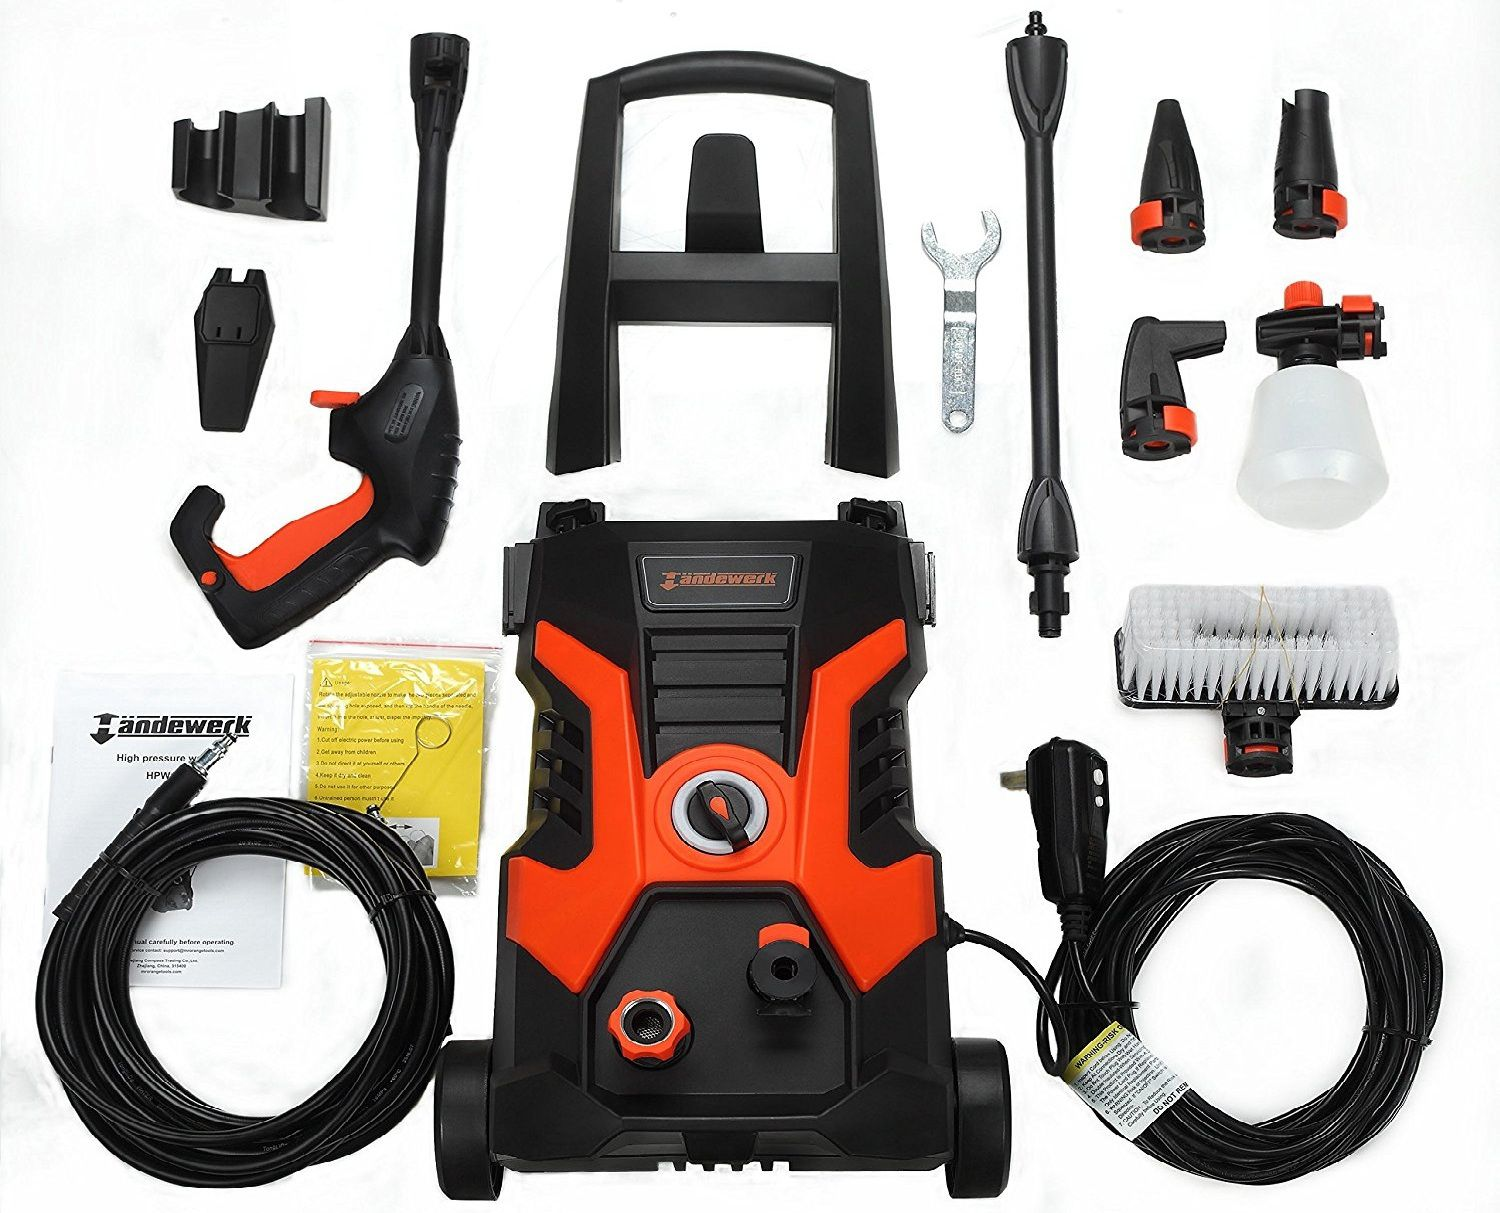 Handewerk 13 AMP 1.5GPM Electric Pressure Washer Review